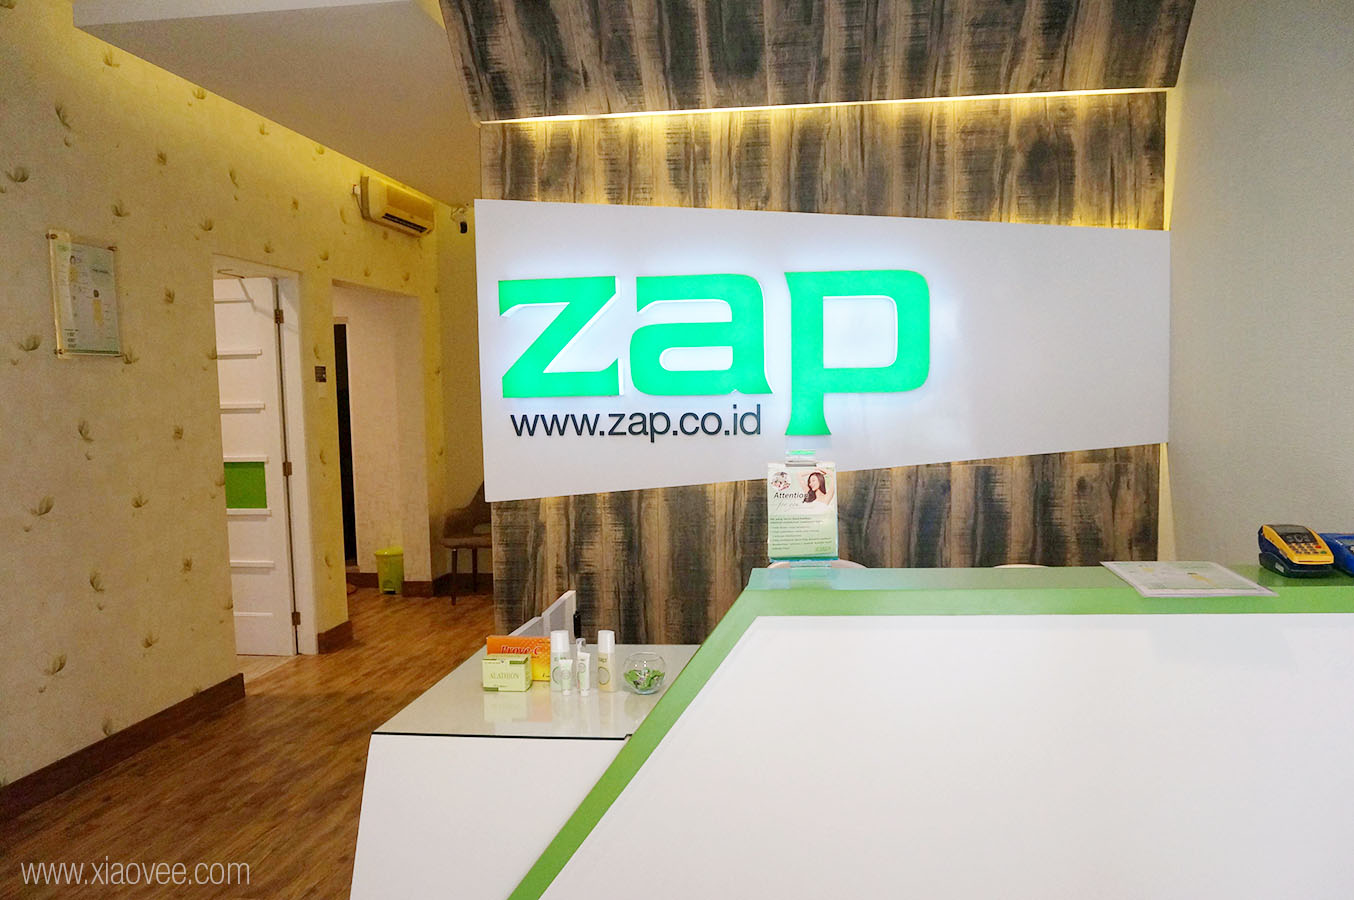 ZAP permanent hair removal, ZAP clinic, ZAP Facial rejuvenation review, ZAP Surabaya